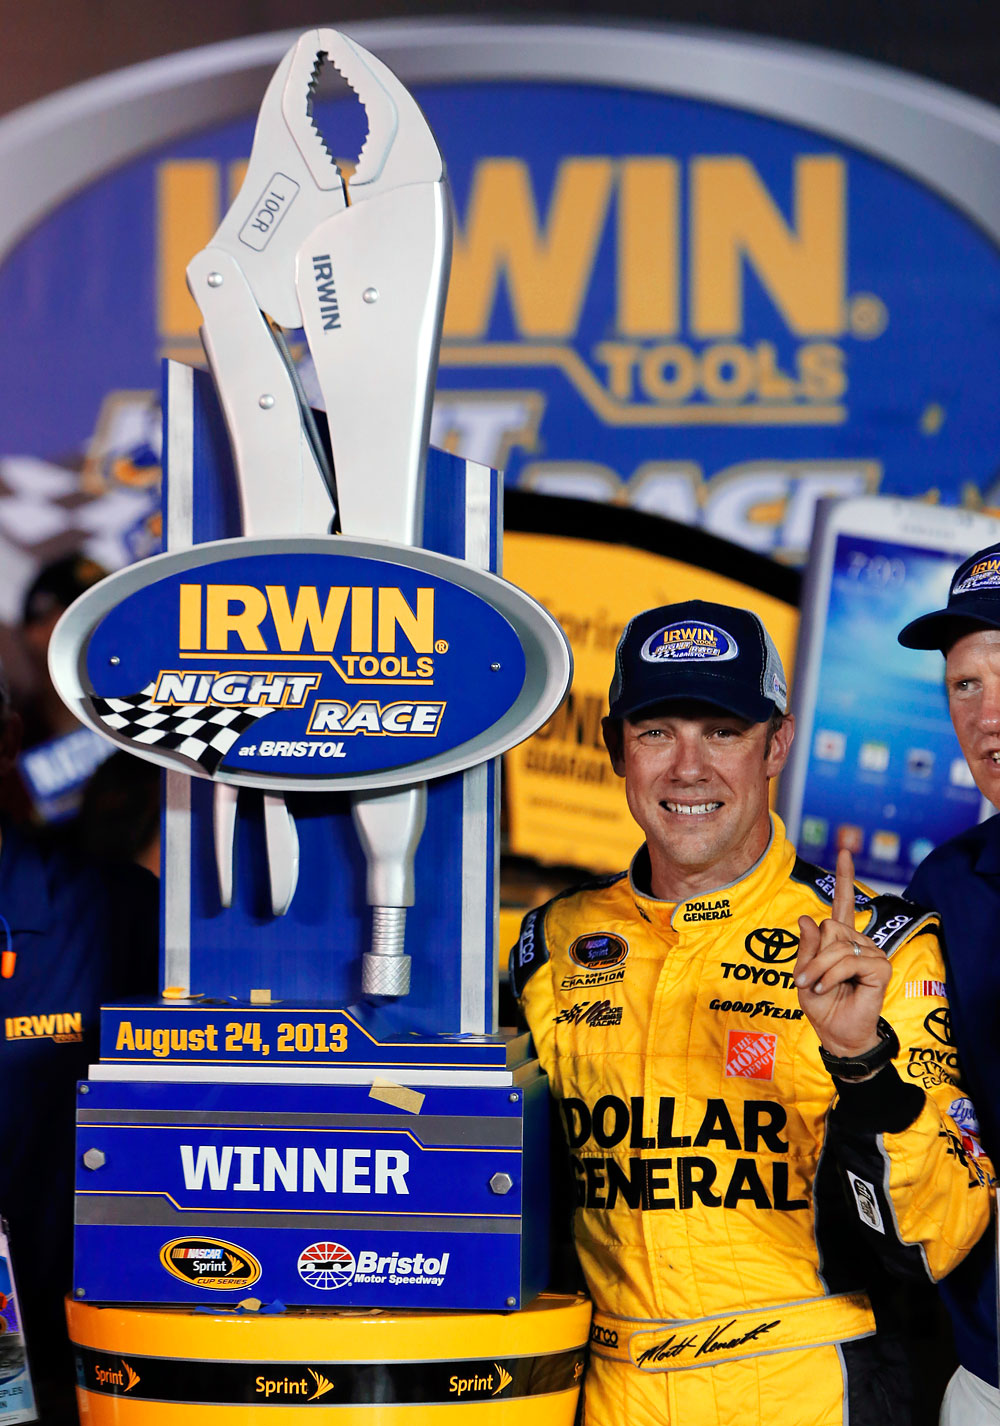 These crazy NASCAR trophies will blow your mind